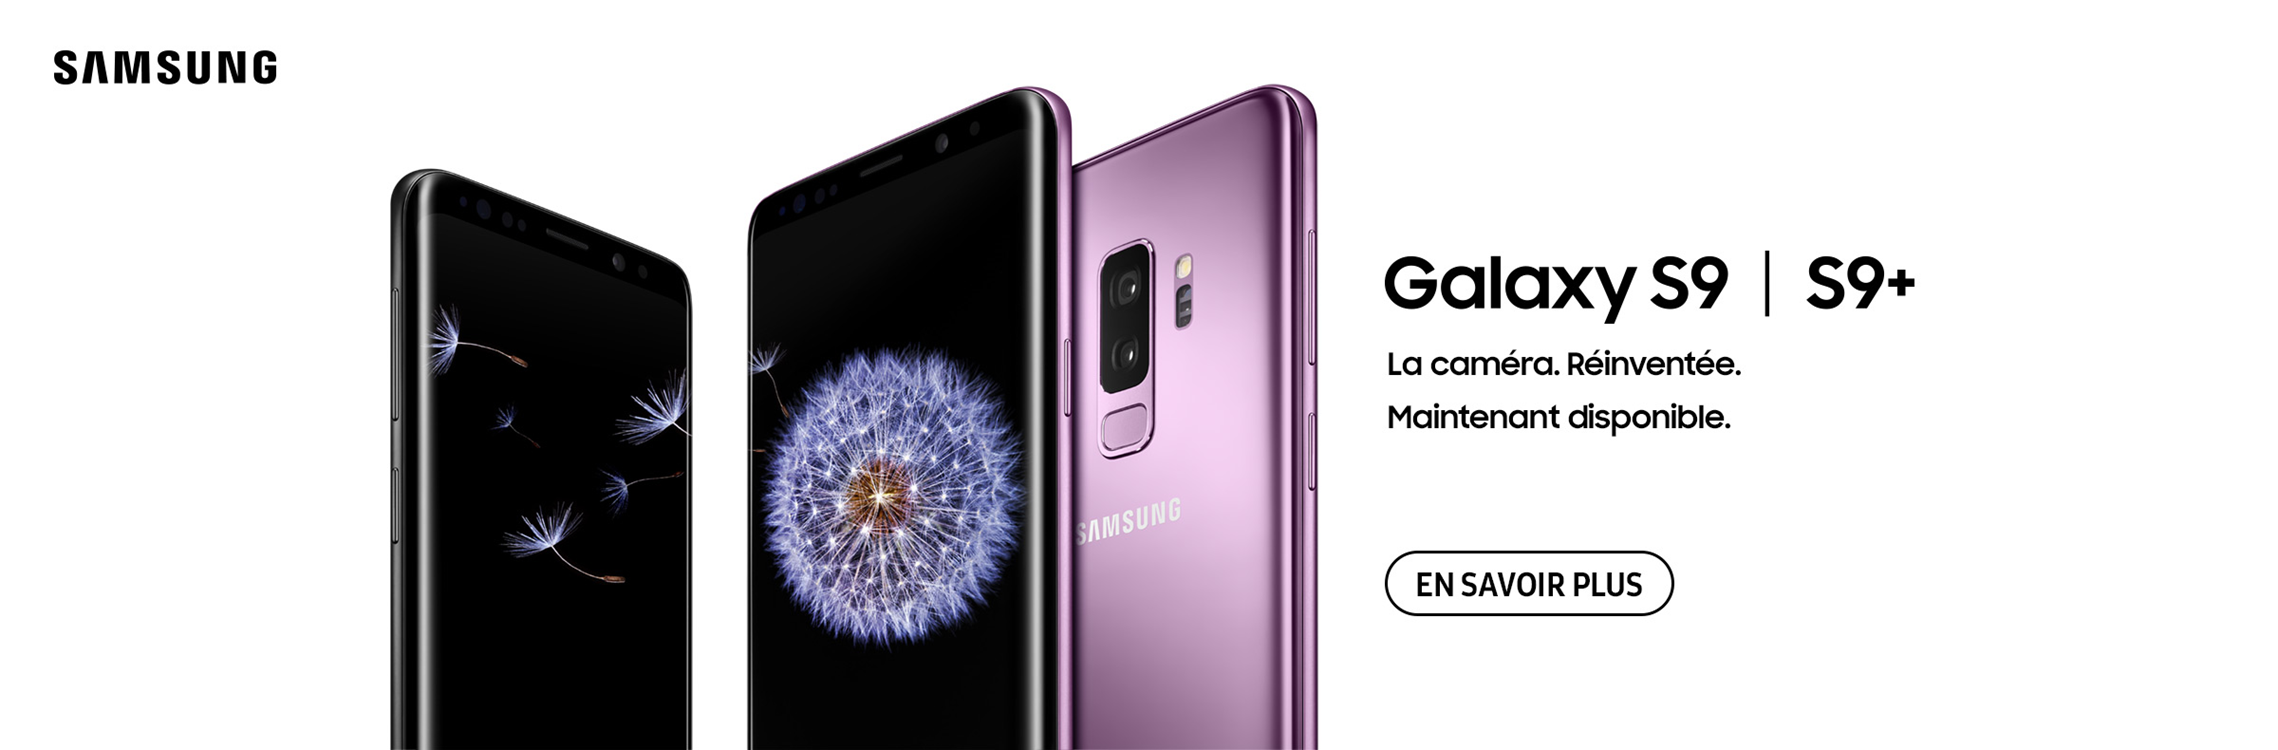 Samsung Galaxy S9 Maintenant disponible